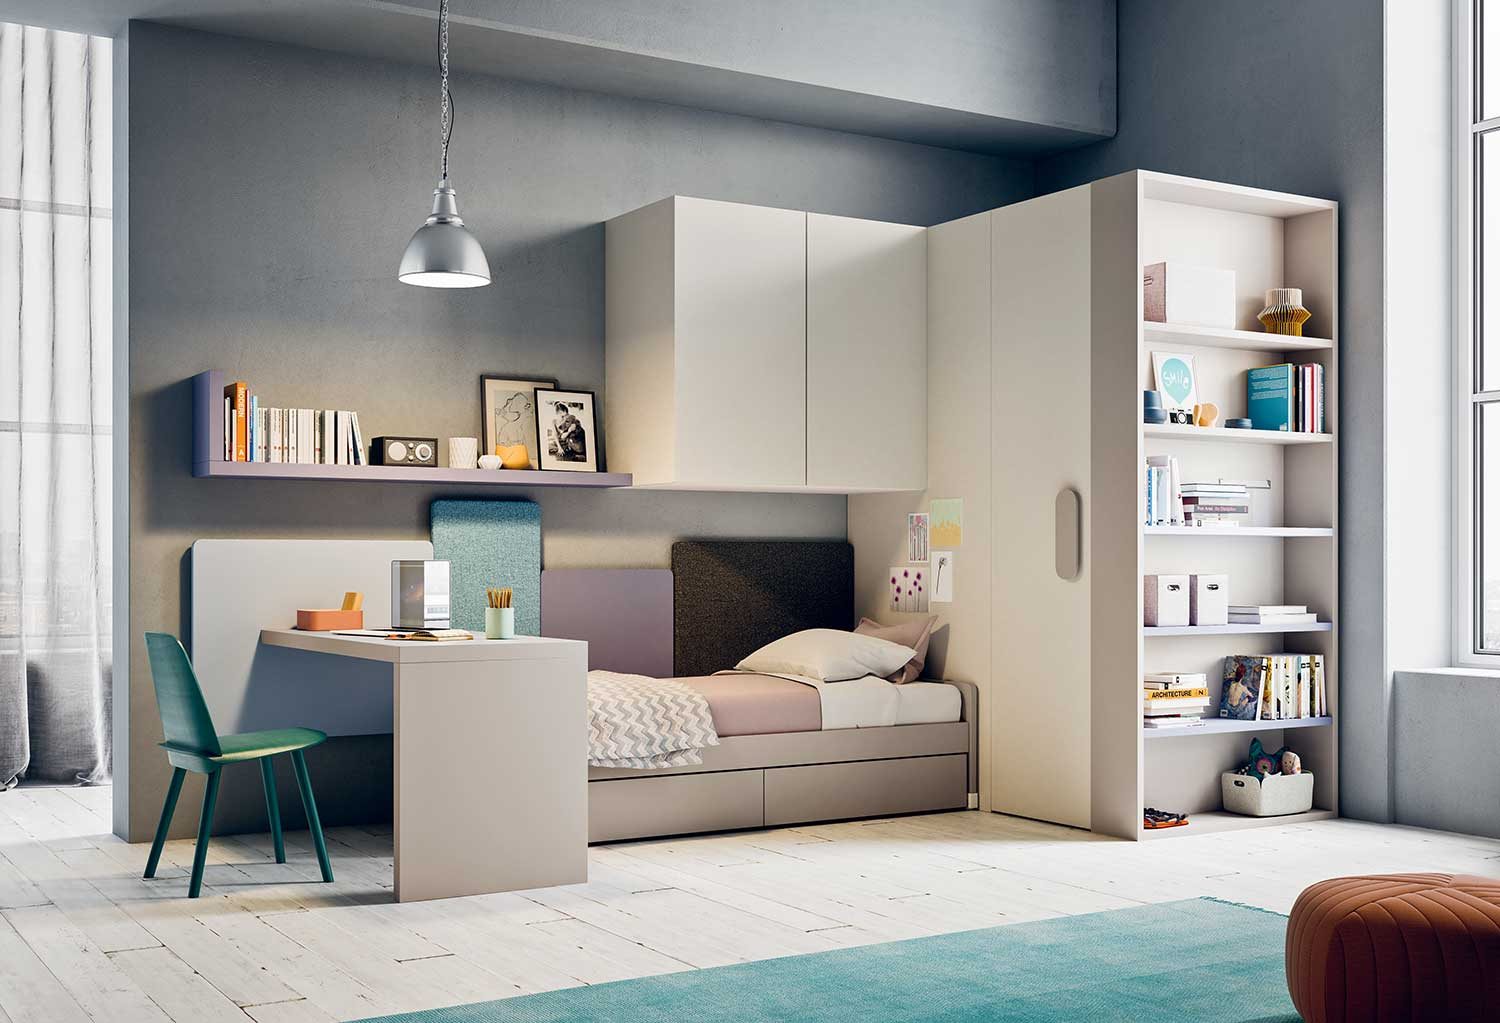 Start P25 is a complete set of girls' bedroom furniture with walk-in closet, bed with drawers, desk, shelving and overbed 2 door wardrobe cabinet